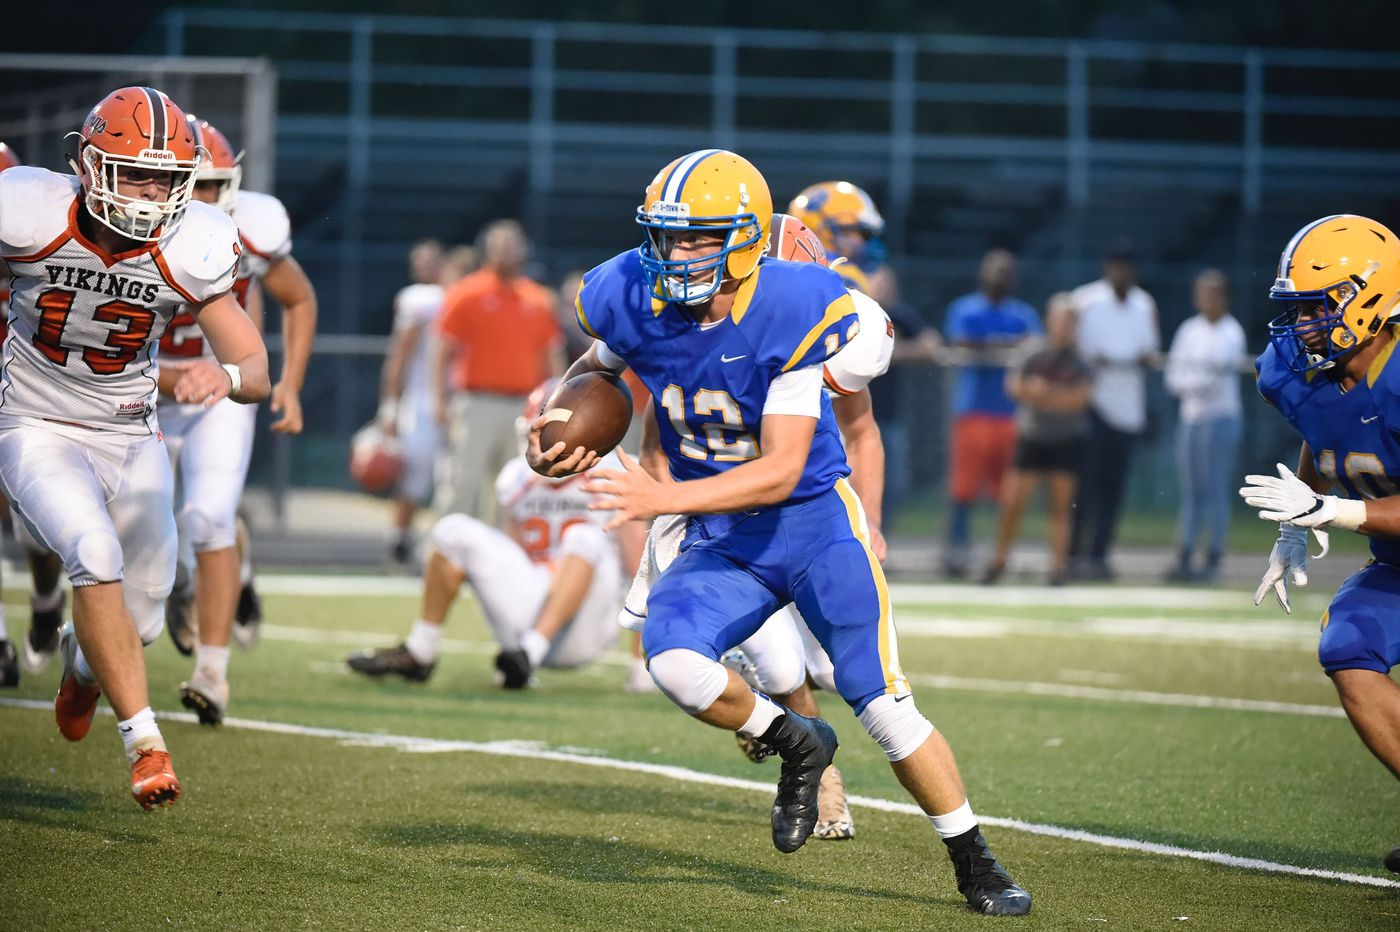 Football Friday preview: Can Downingtown East upset explosive Coatesville?